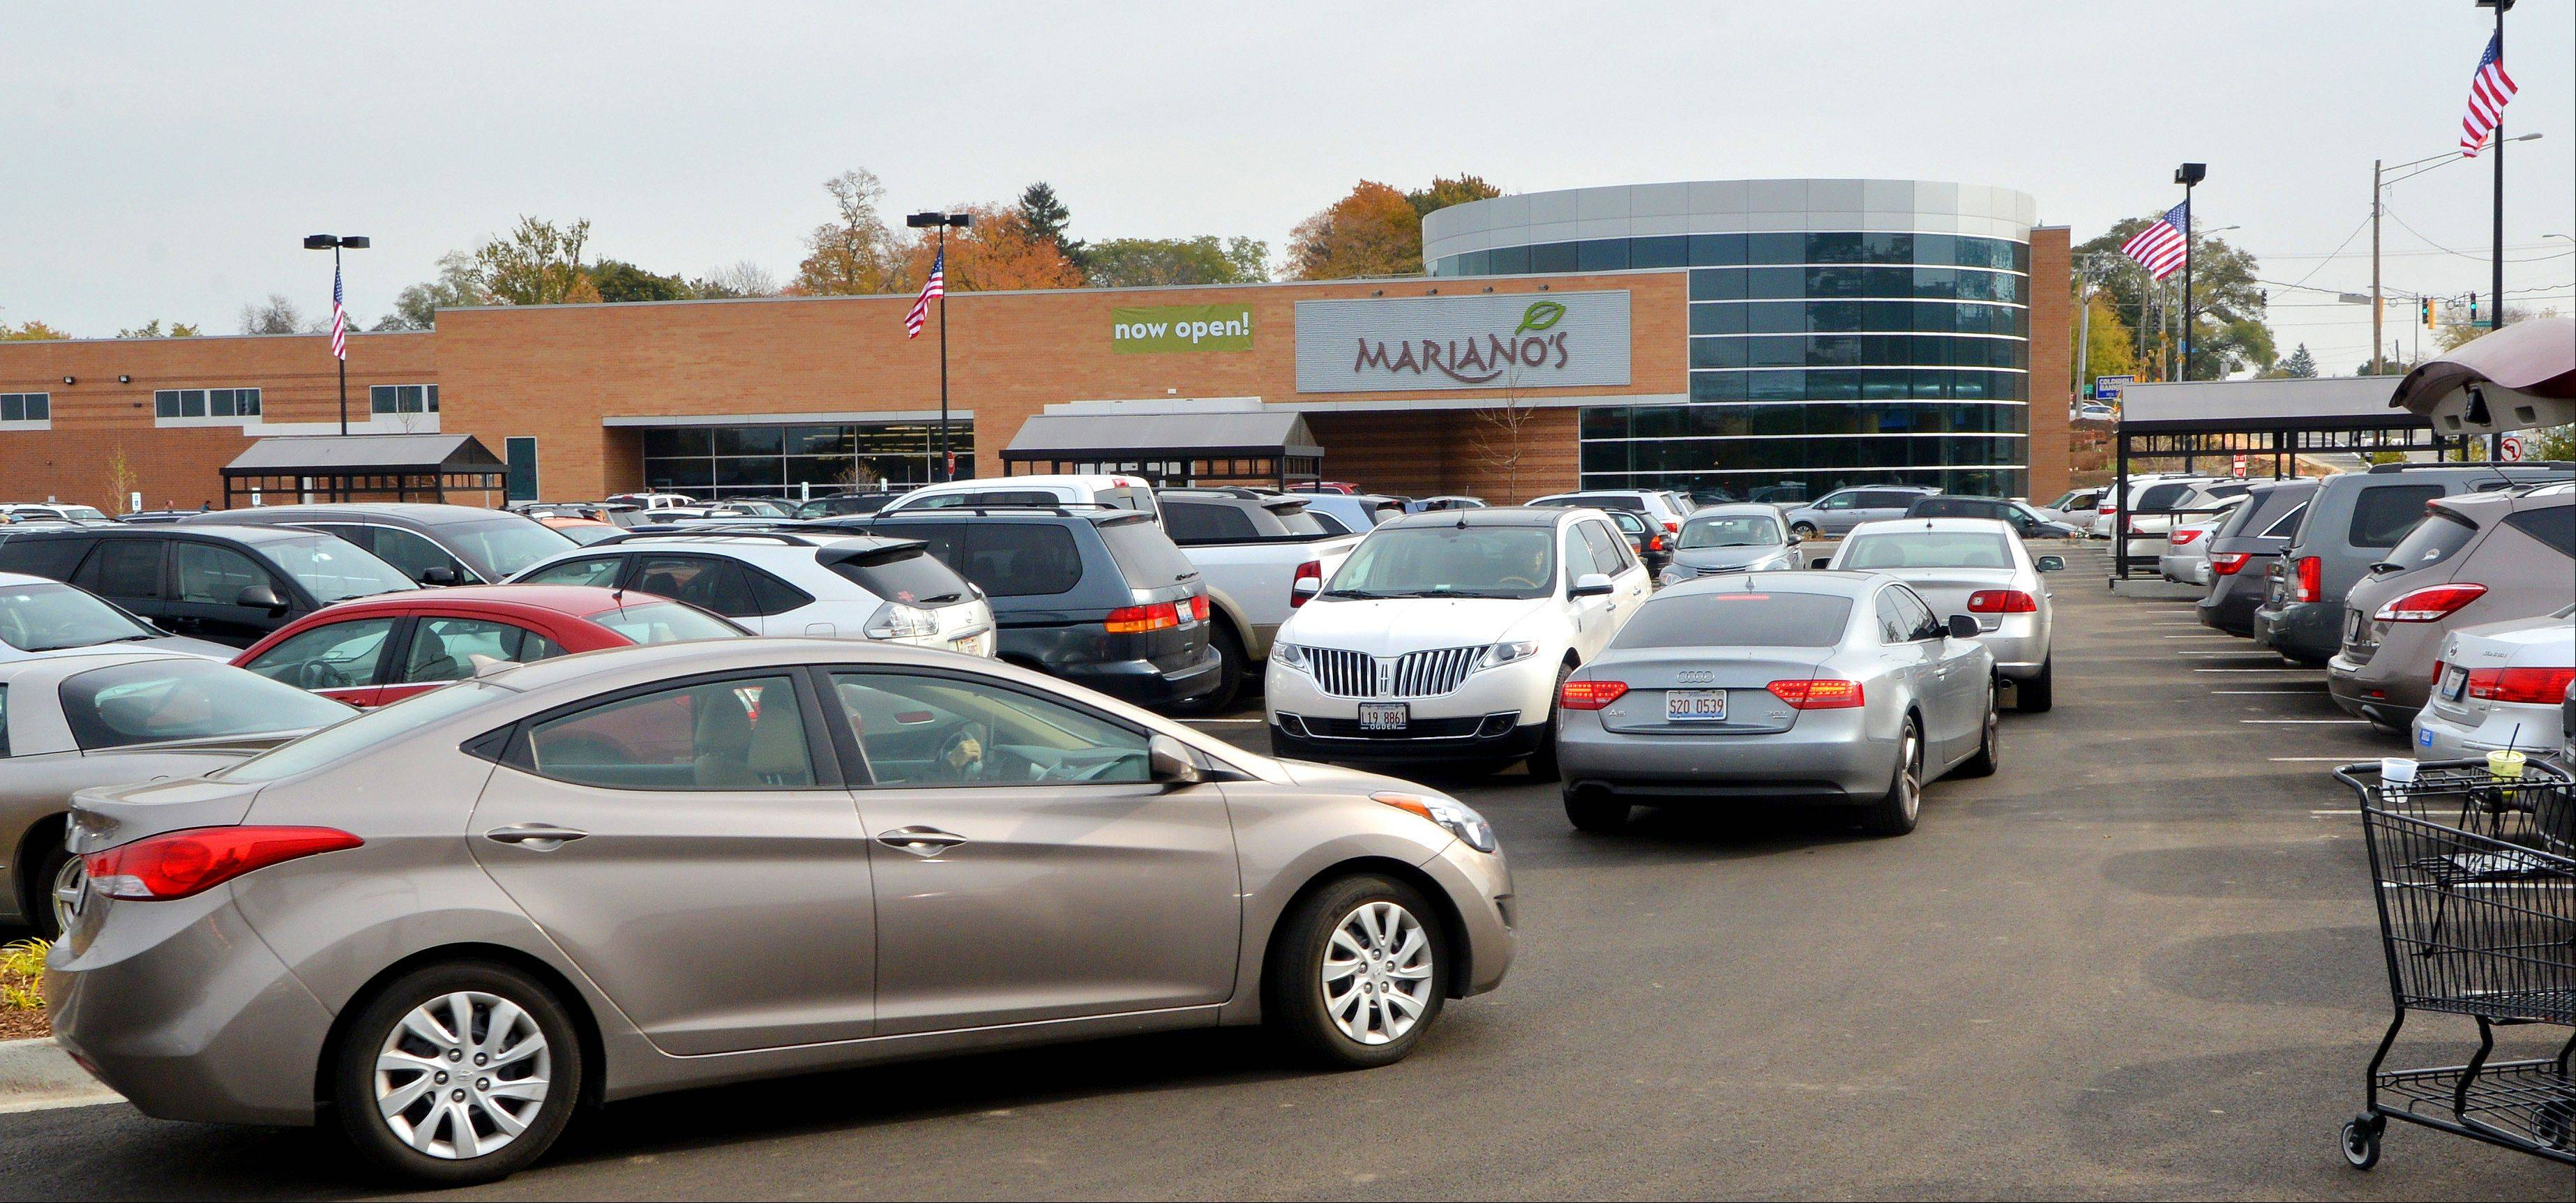 Large crowds packed the Mariano's Fresh Market in Wheaton Tuesday as the store opened for the first time. Both the parking lot adjacent the store and the spillover lot across Main Street were completely filled during the midmorning hours.